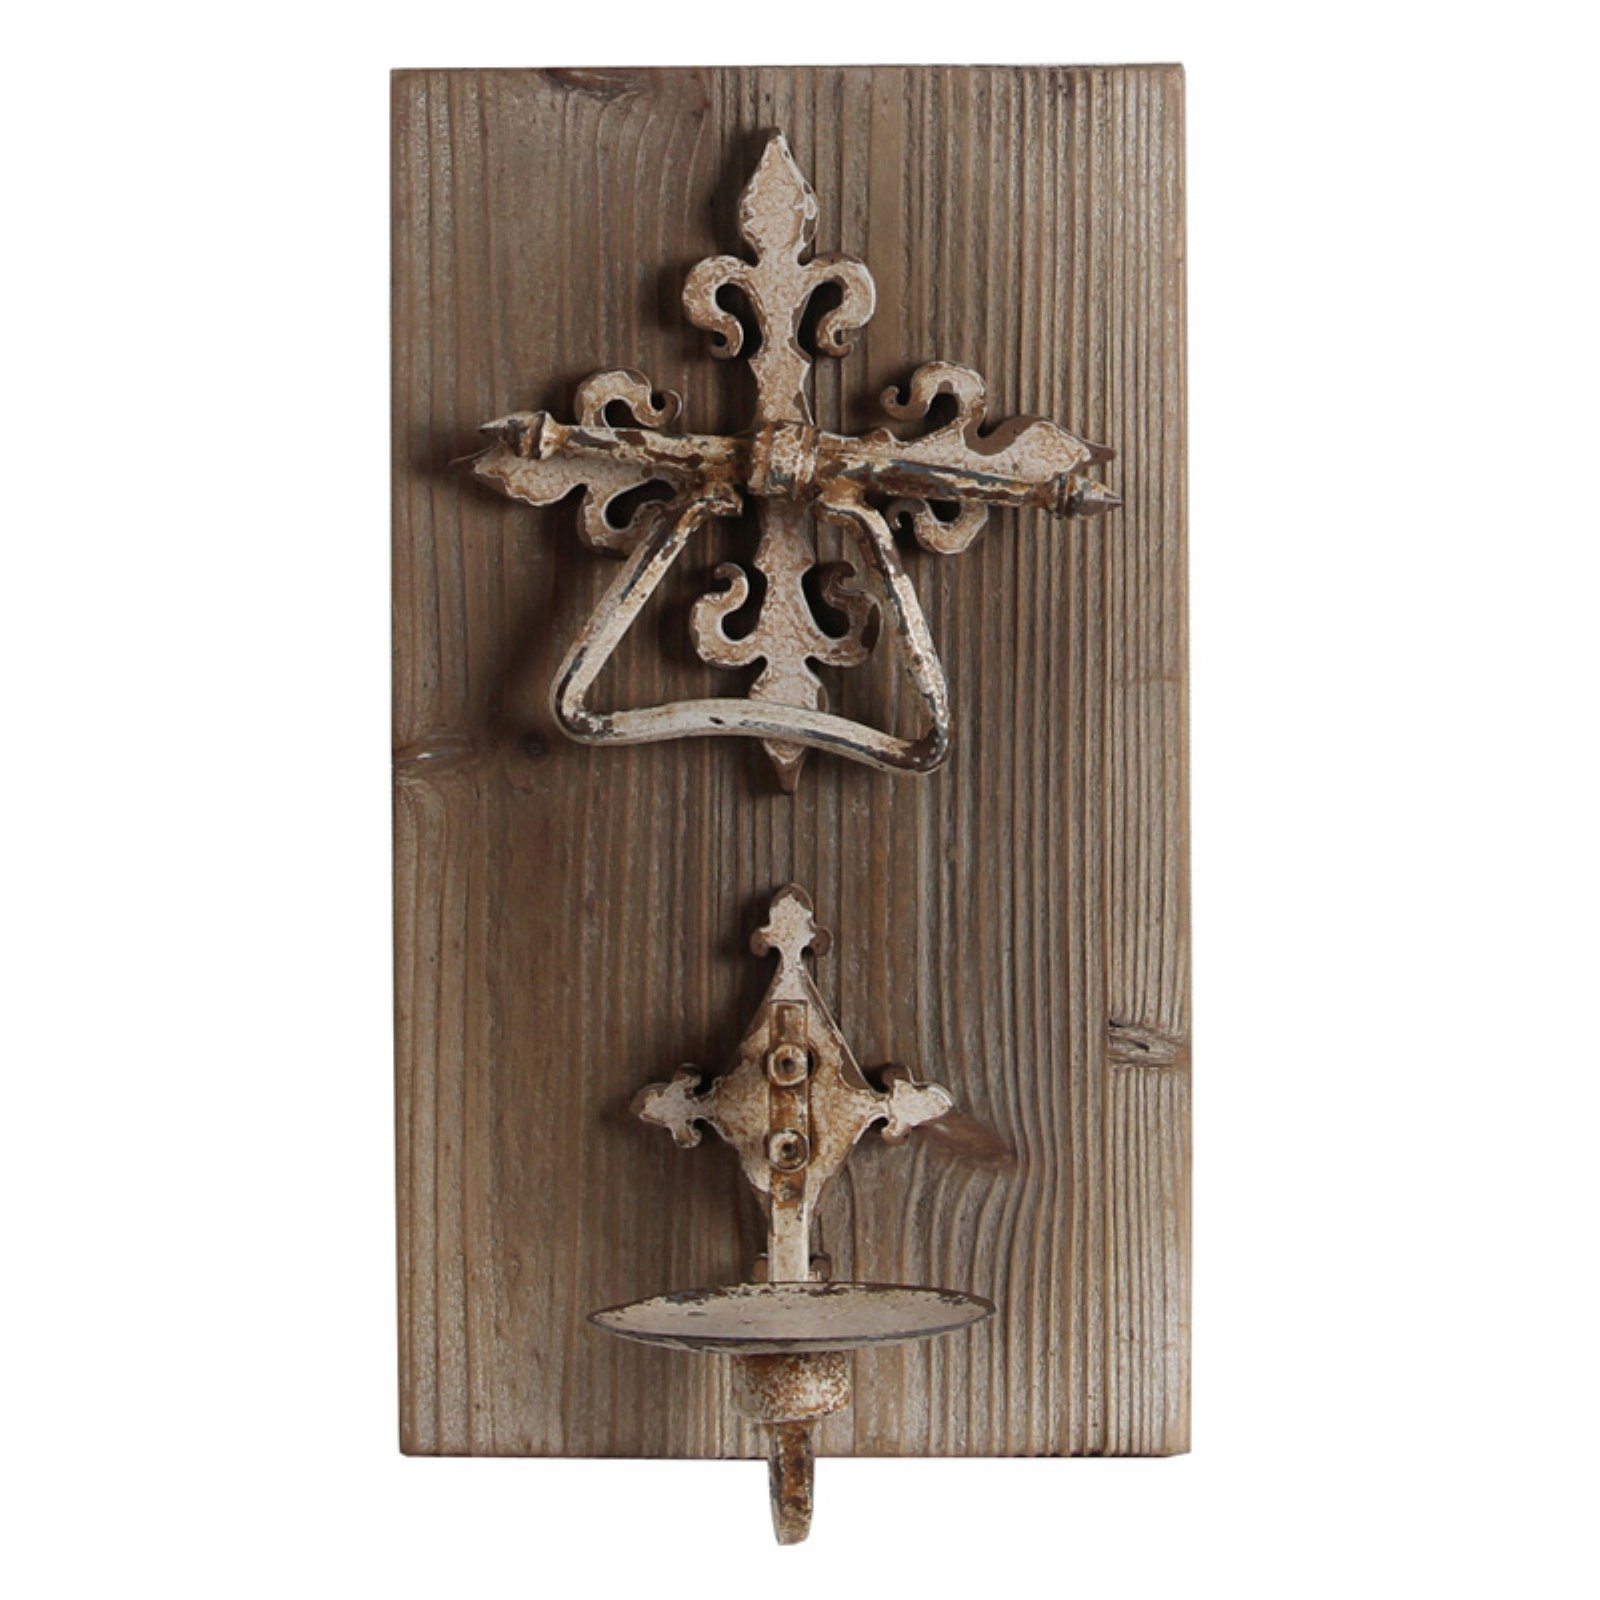 Privilege International Wood Wall Candle Holder